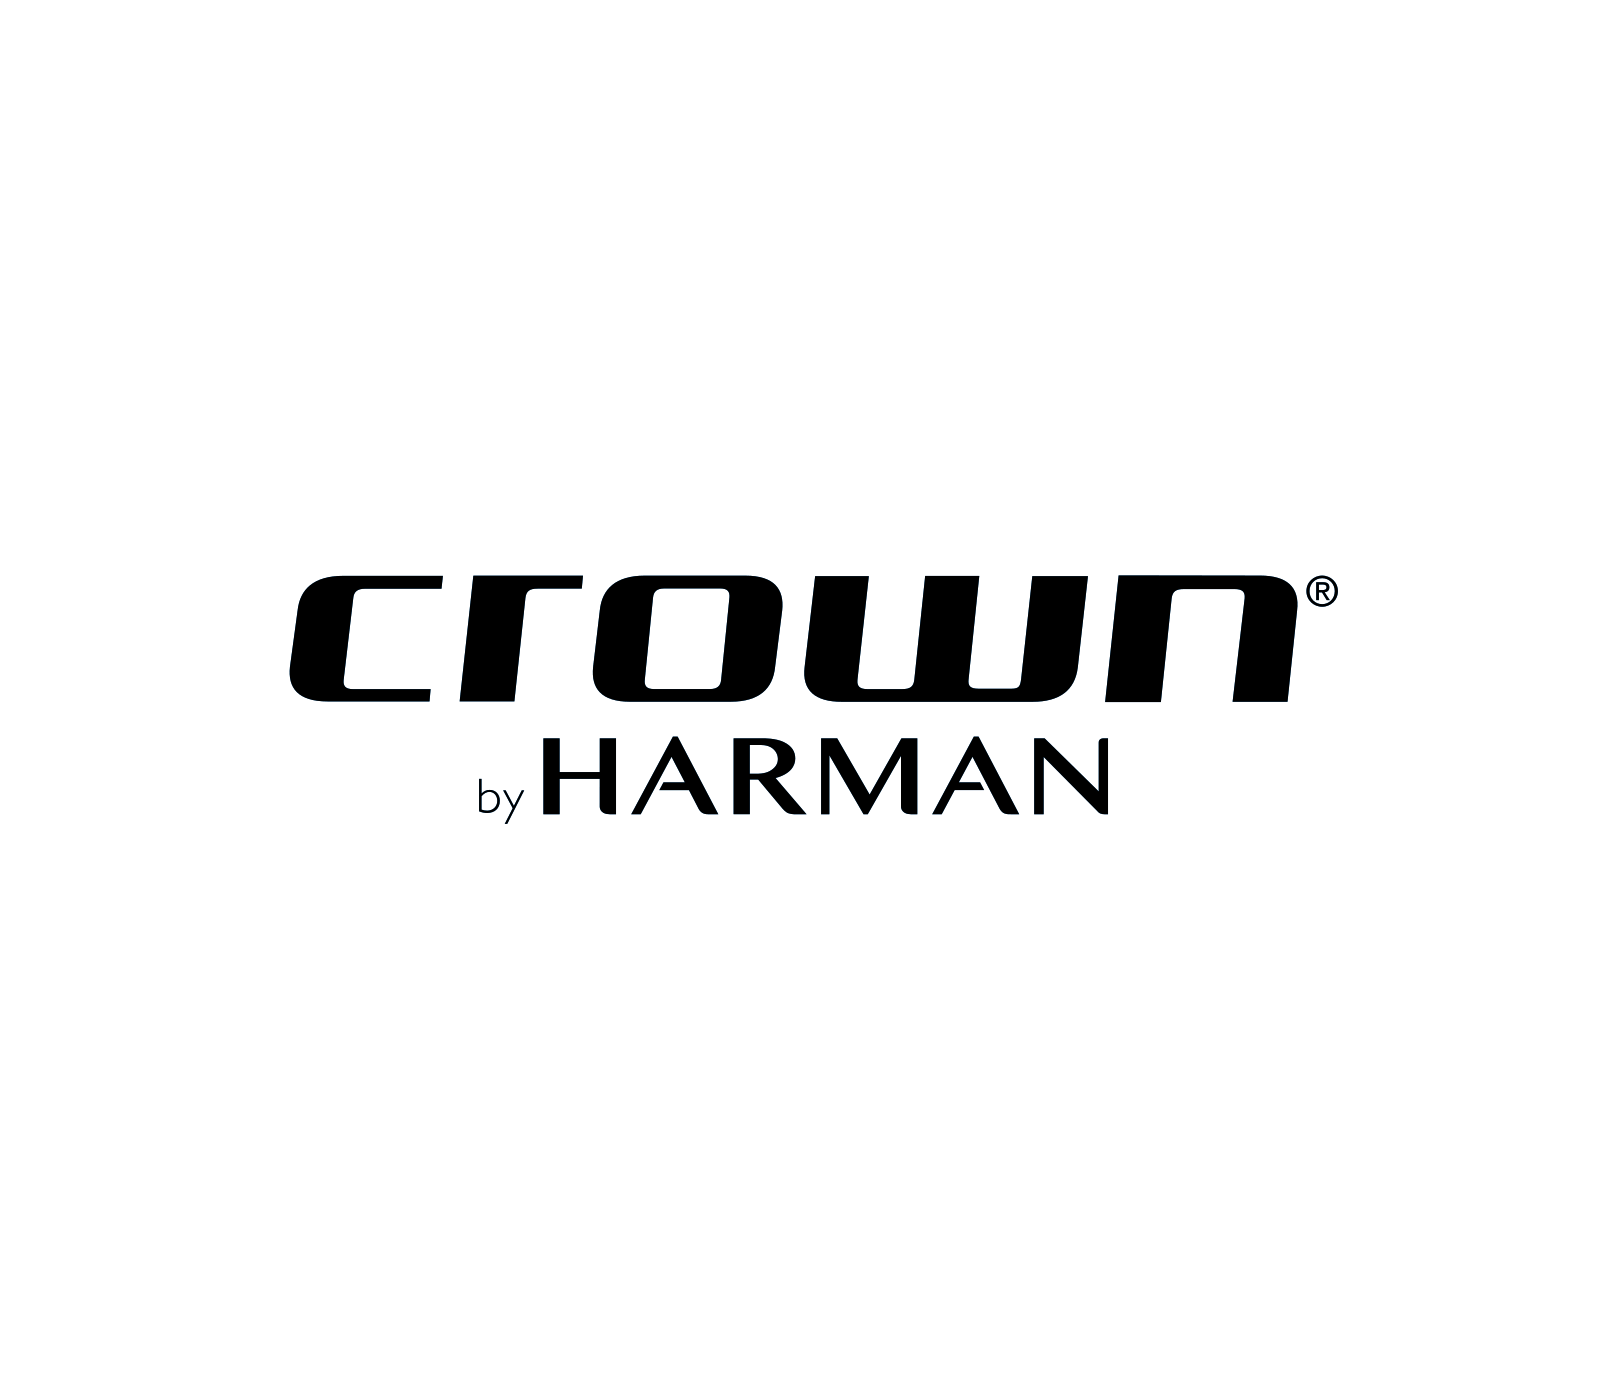 crown logo 1600x1400